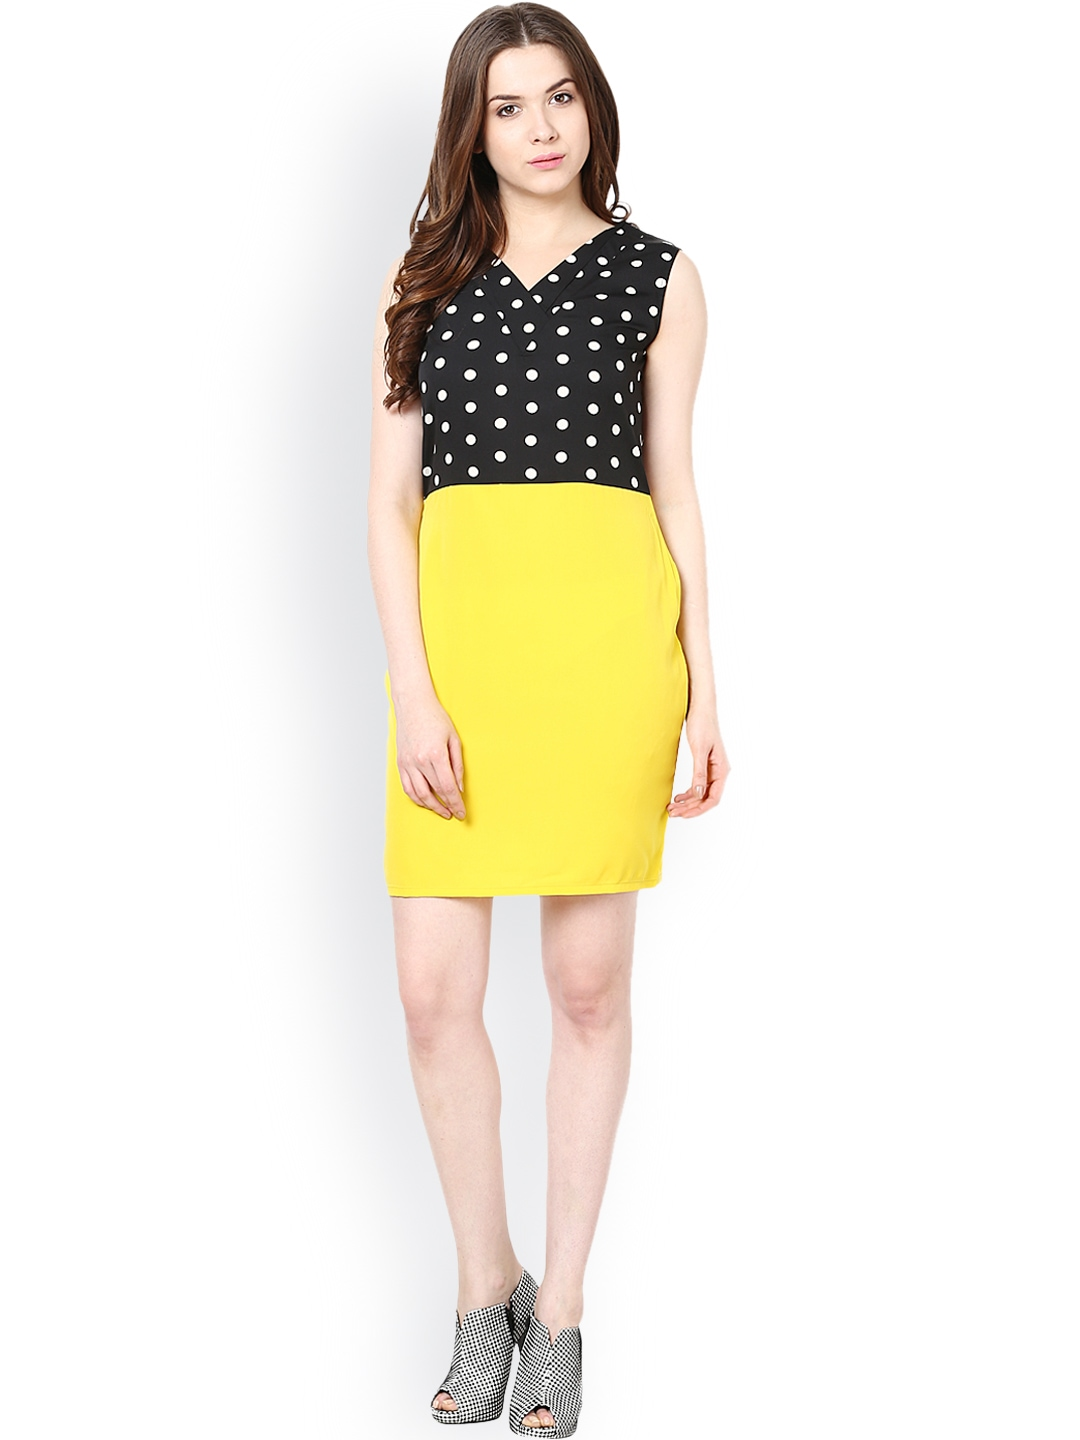 In last thirty years or so, polka dots have gained continually increasing popularity, and designers have come up with some